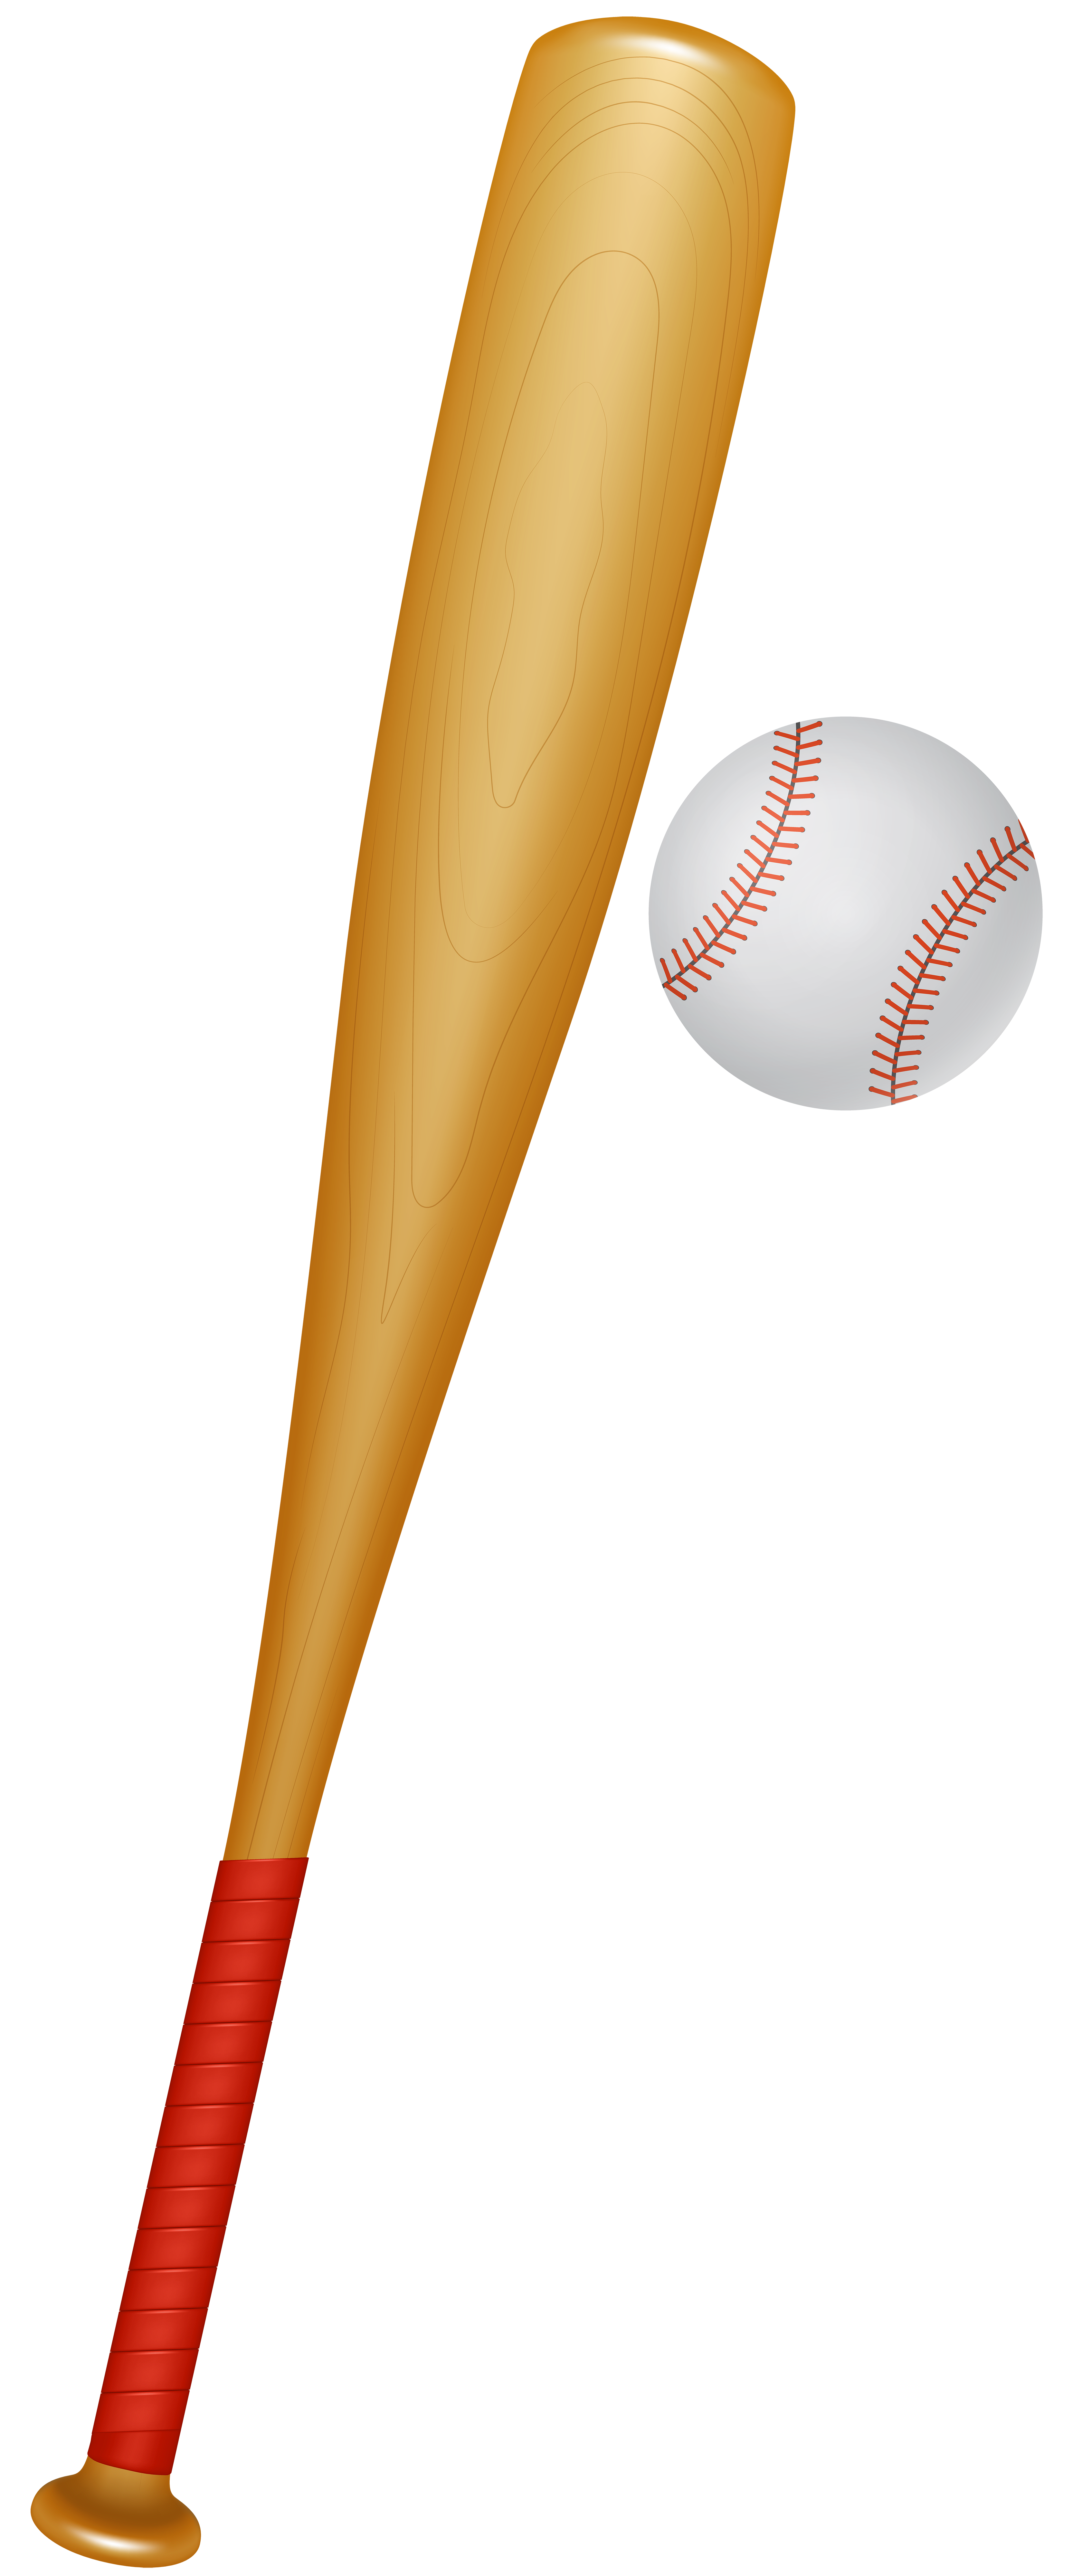 Baseball bat clipart transparent background picture freeuse Baseball Bat PNG Clipart Image | Gallery Yopriceville - High ... picture freeuse